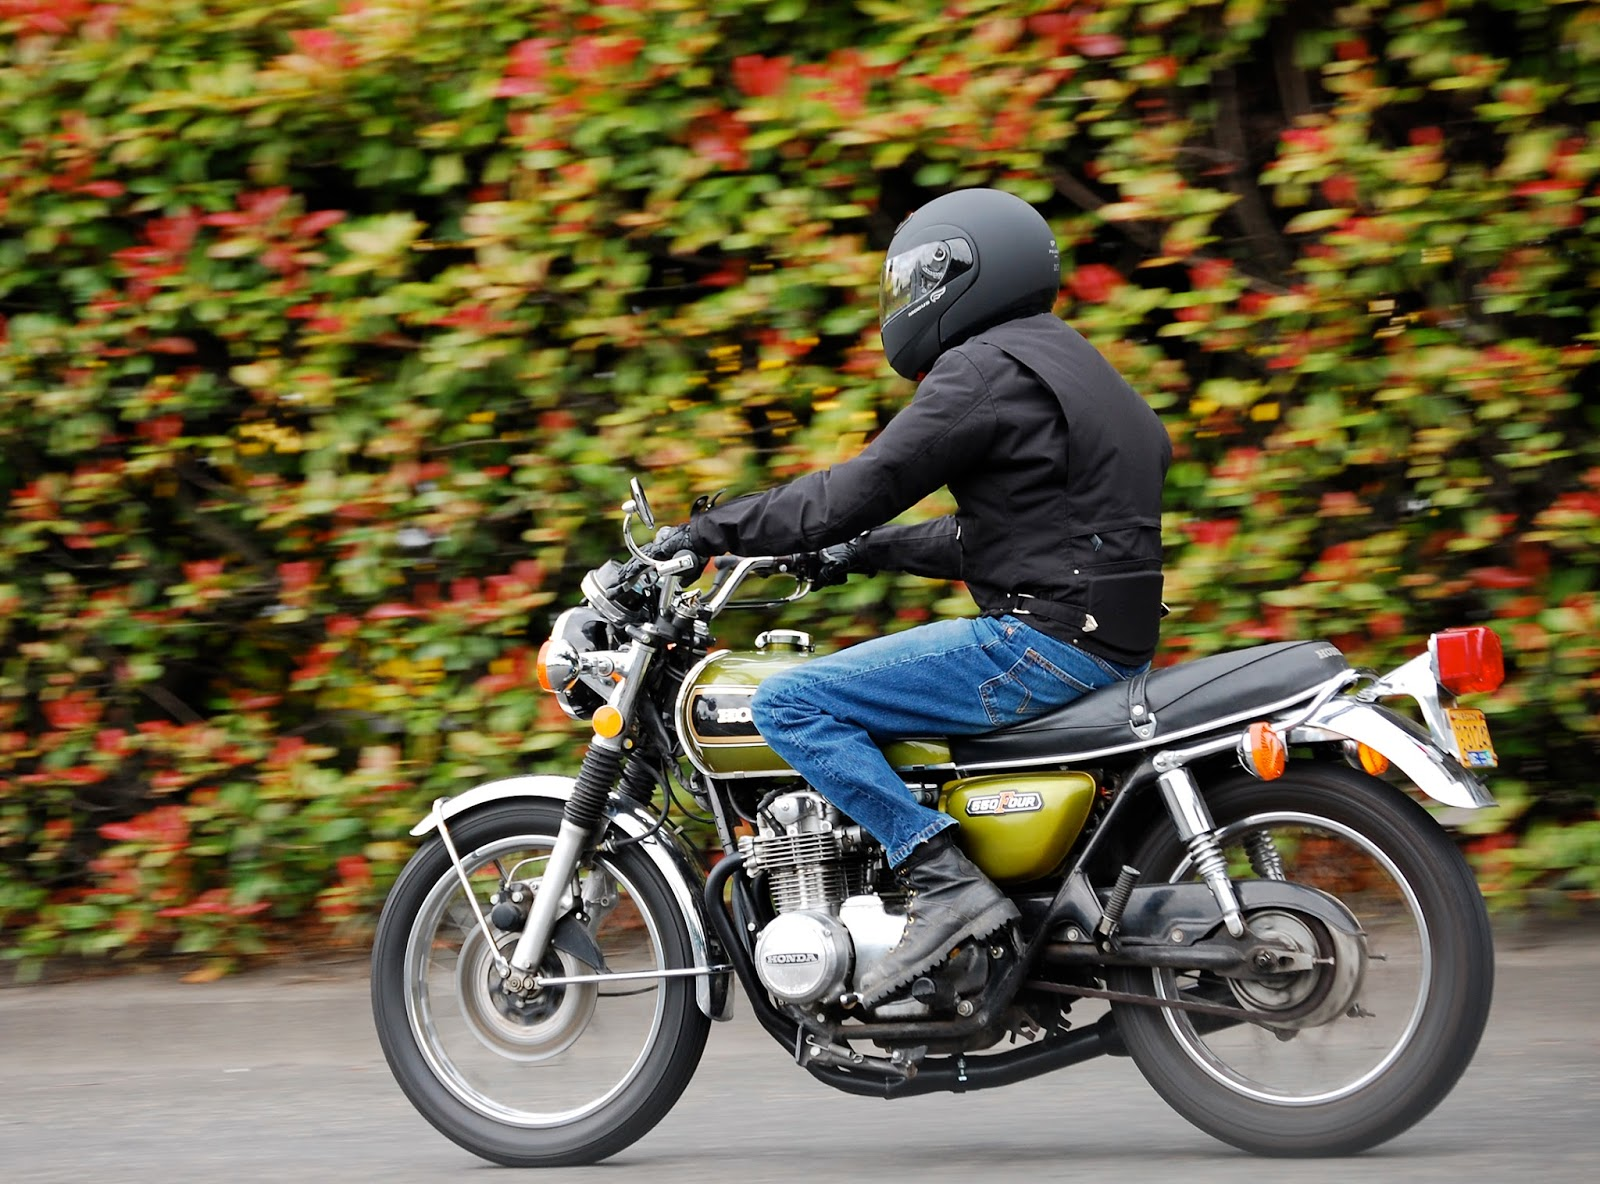 How To Buy A Second Hand Motorcycle And Its Legal Documents The - Buy legal documents